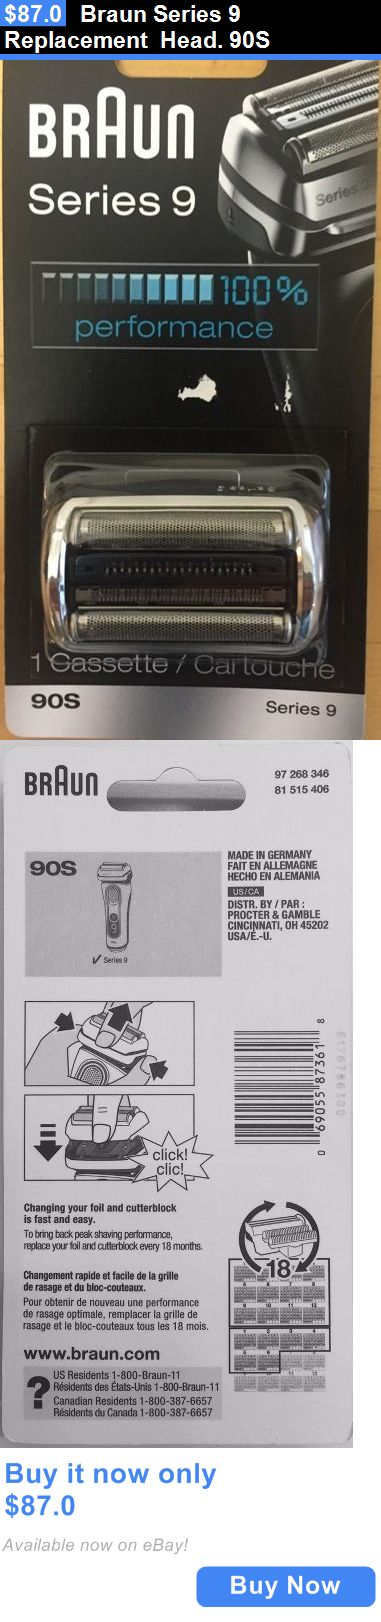 Shaver Parts and Accessories: Braun Series 9 Replacement Head. 90S BUY IT NOW ONLY: $87.0